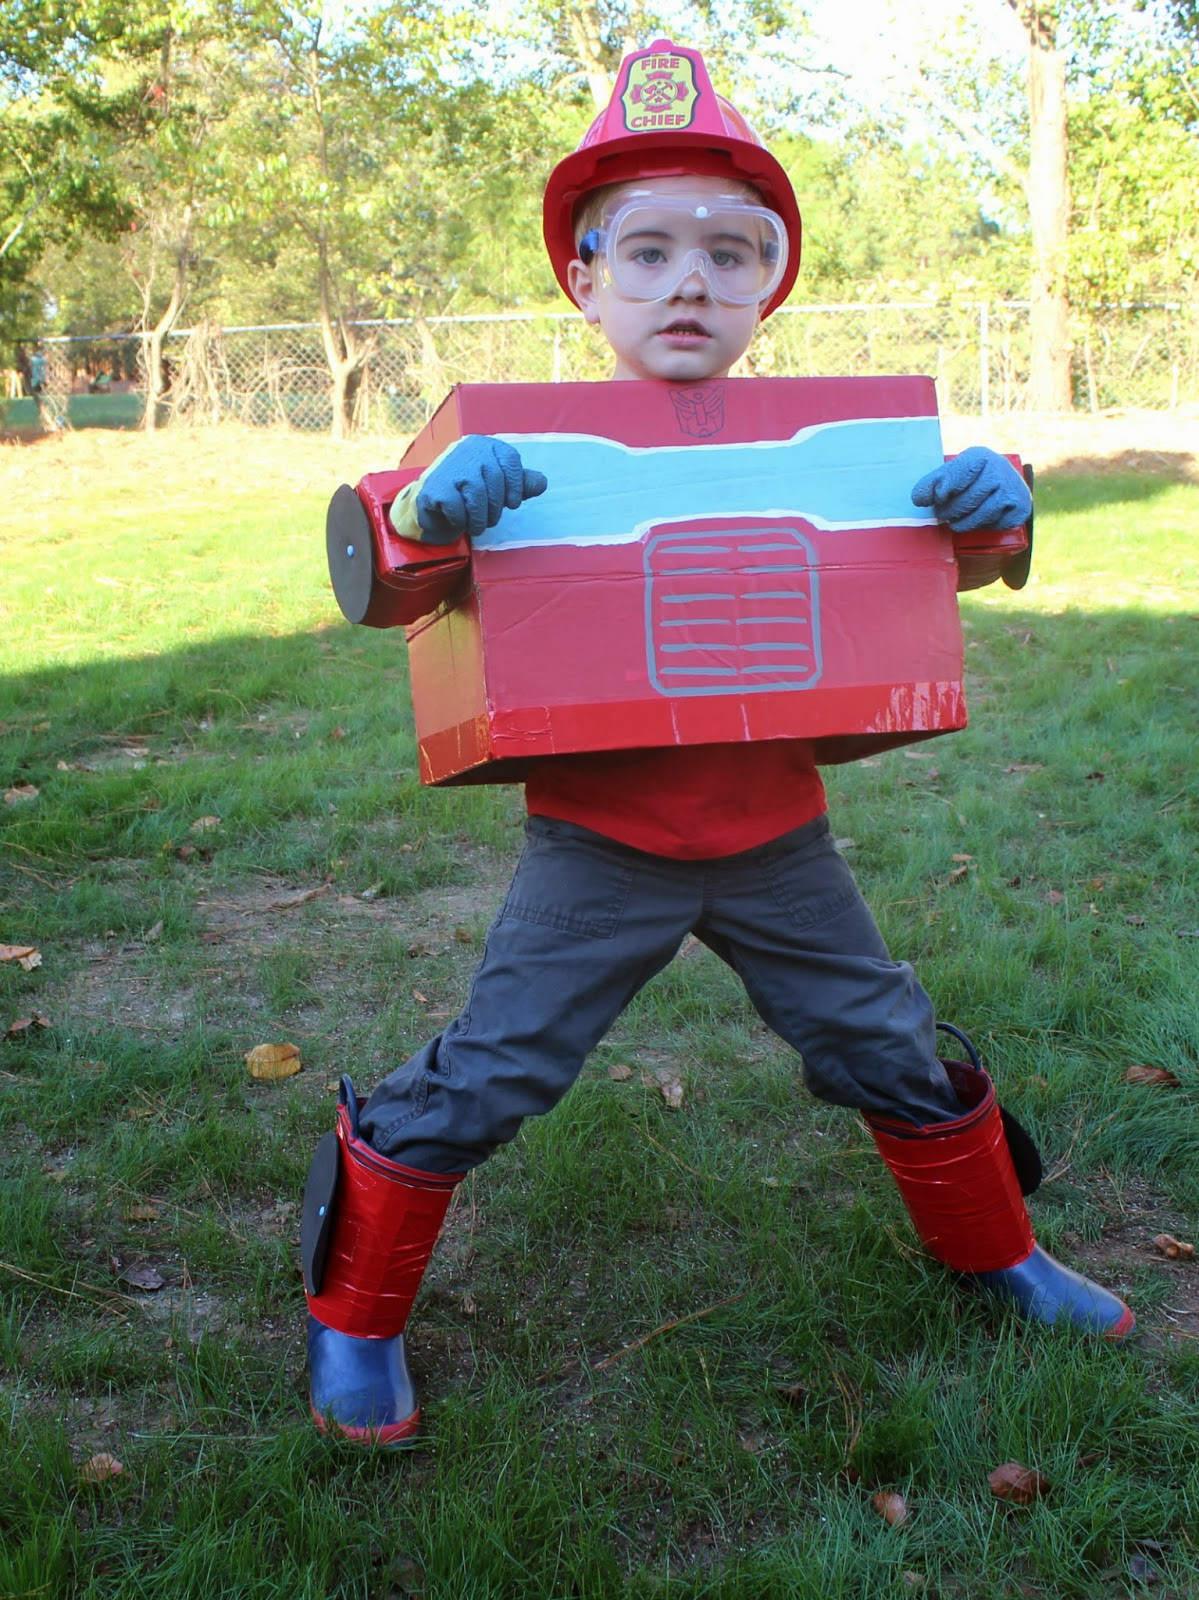 Best ideas about DIY Transformer Costume . Save or Pin Love City costume love our diy halloween costumes Now.